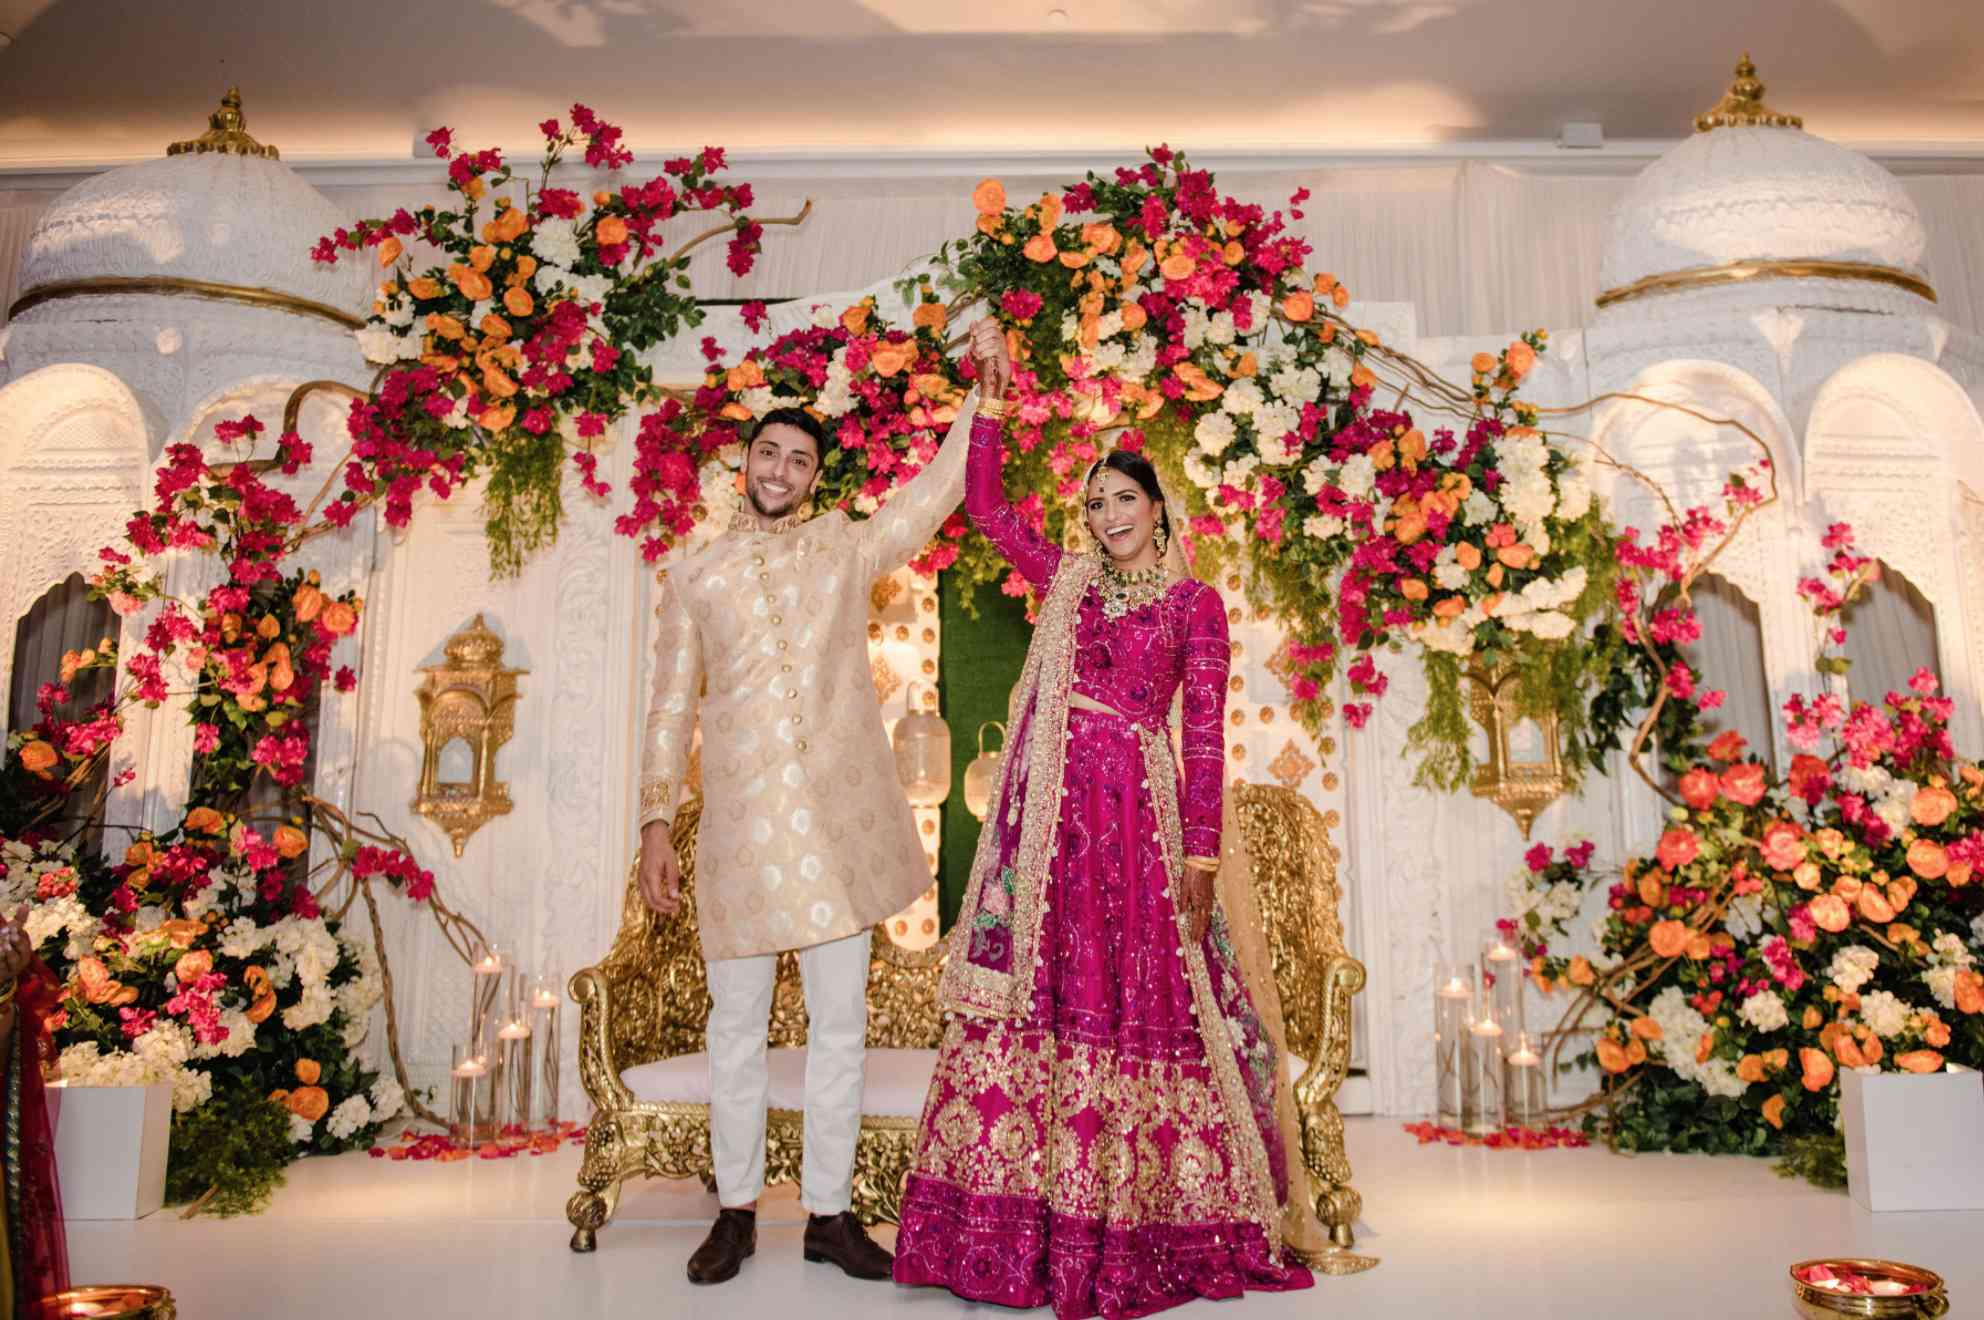 Newlyweds under floral canopy